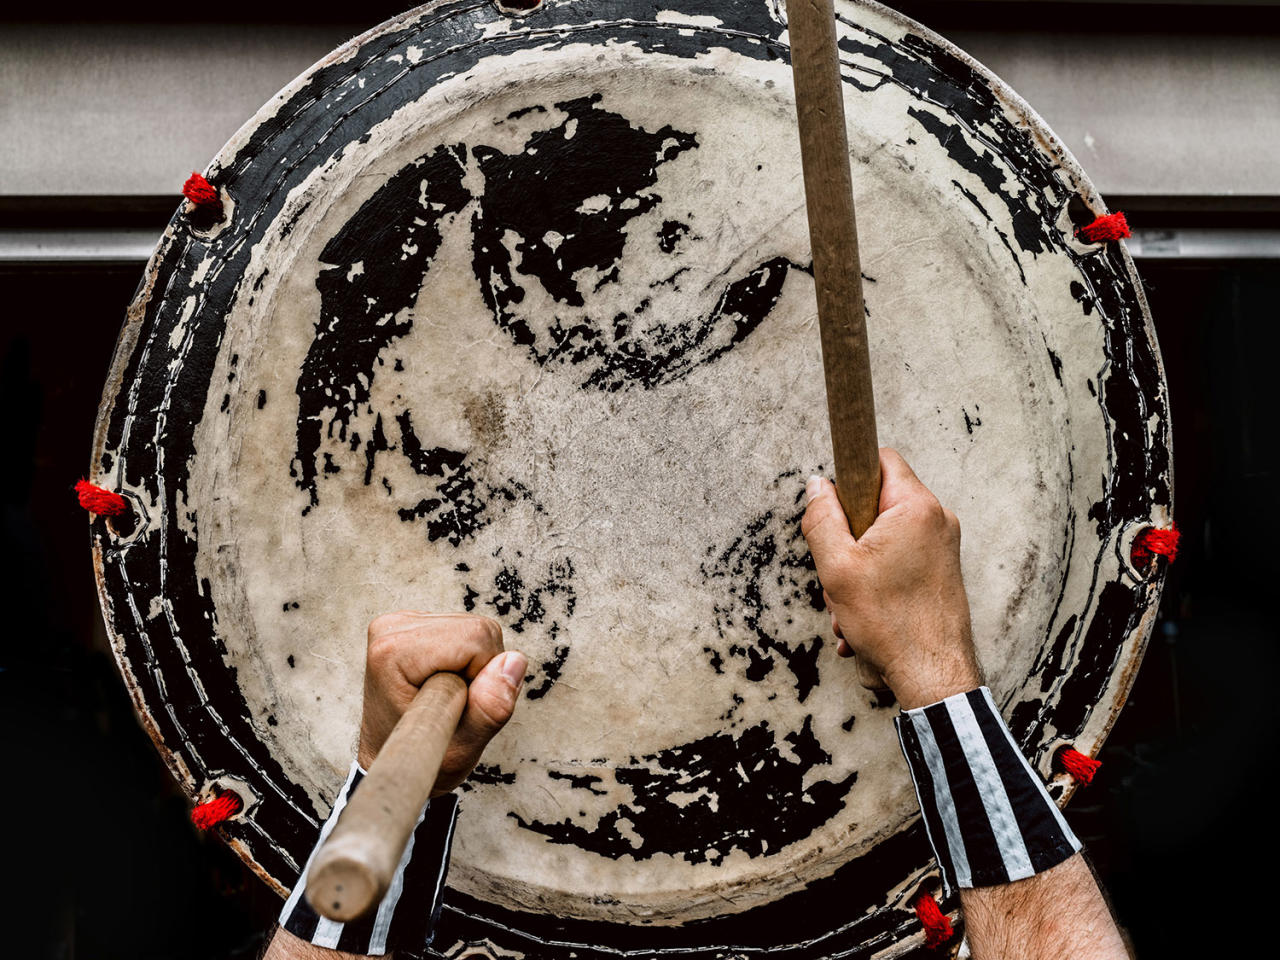 """<p><strong>The Fish — Japanese taiko player</strong><br /> He said: """"For this series, I think reaching out to people and gaining access to the workspace was the most challenging part. (Photo: Sanwal Deen/Caters News) </p>"""